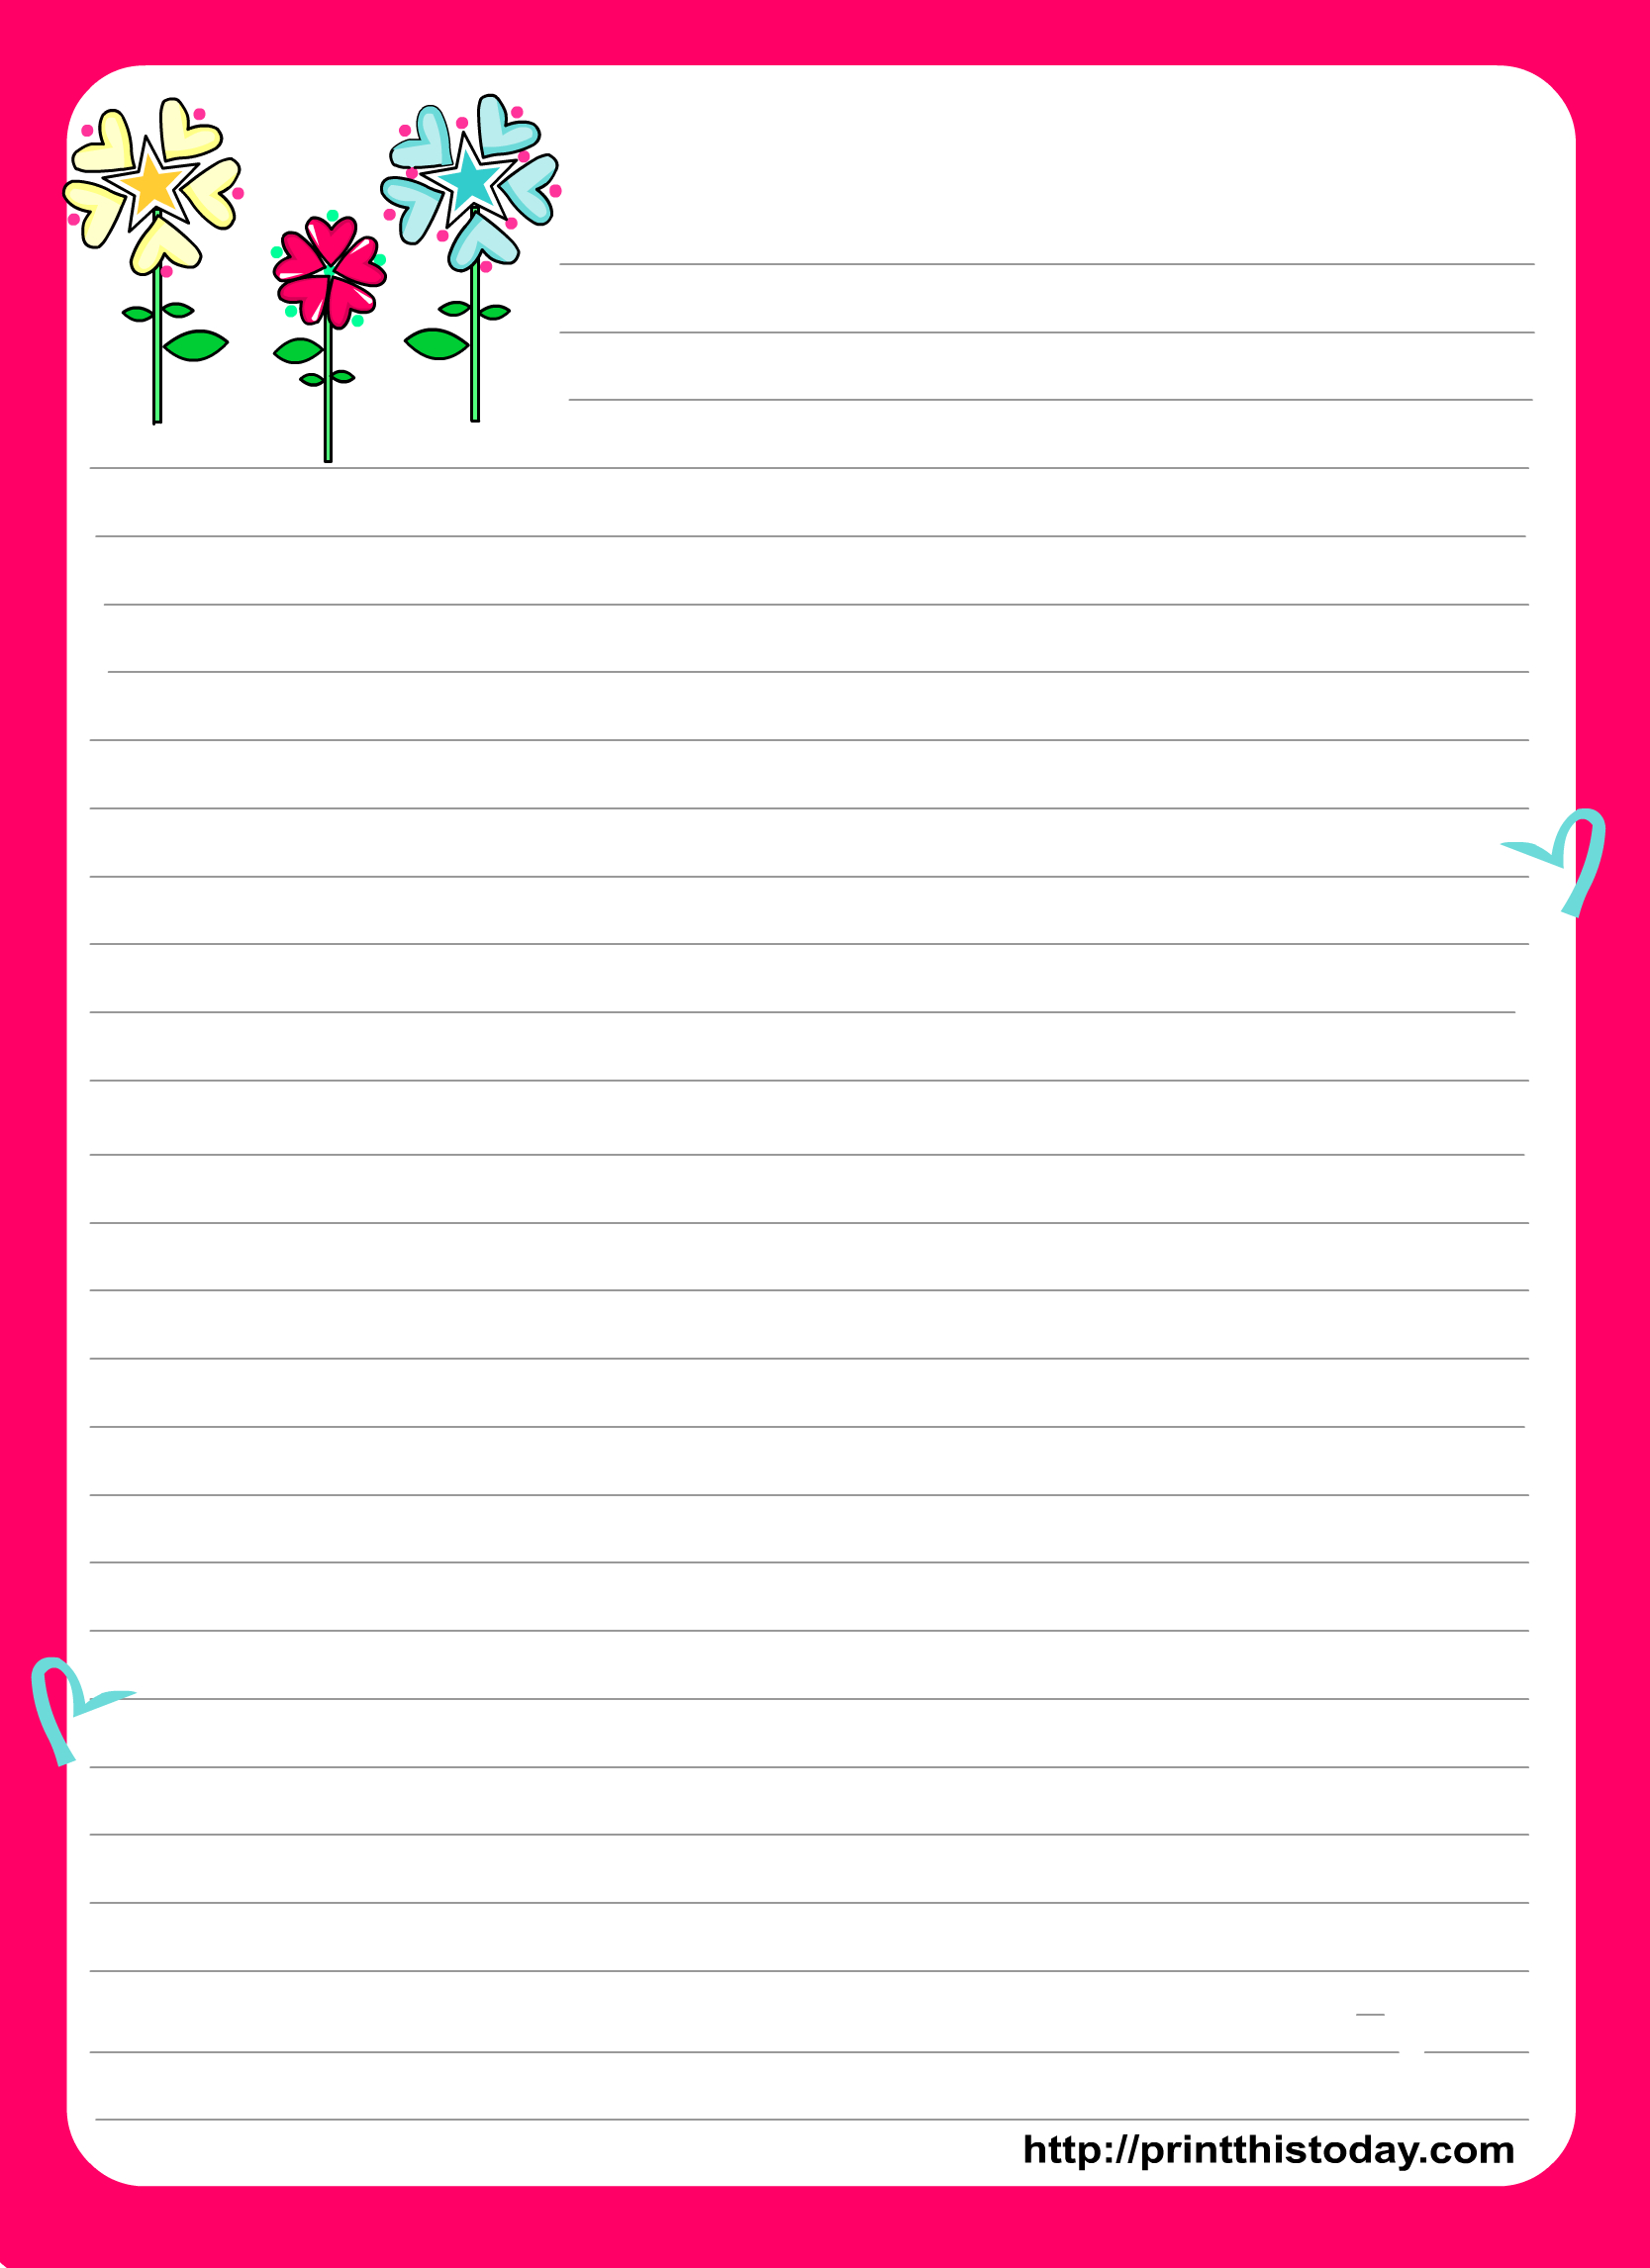 Love Letter Pad Stationery Intended For Blank Letter Writing Template For Kids